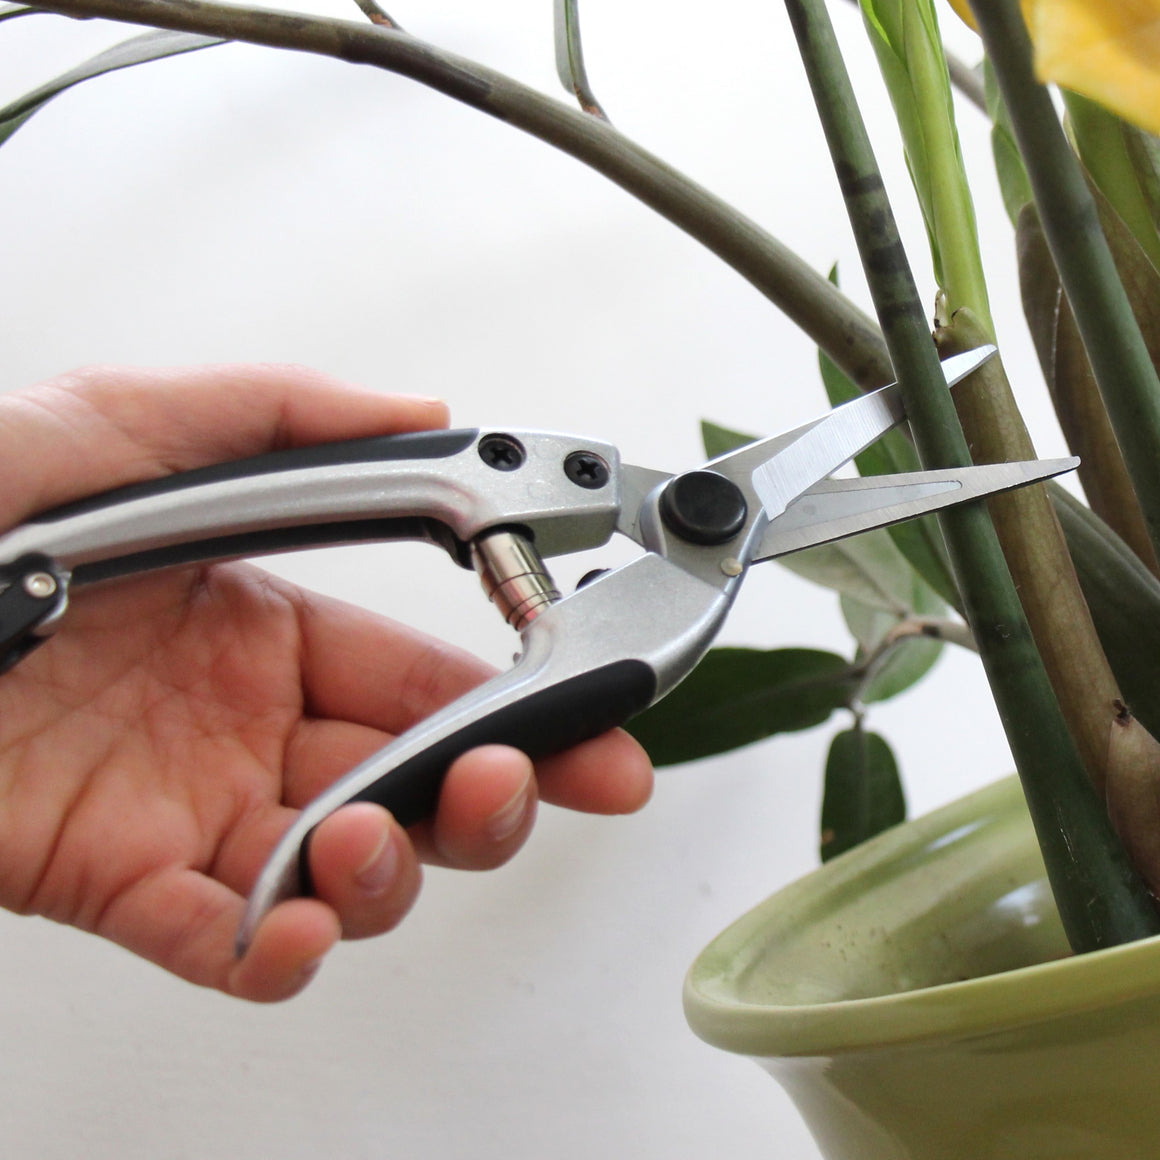 TABOR TOOLS K18A Soft-Touch Micro-Tip Pruning Snip